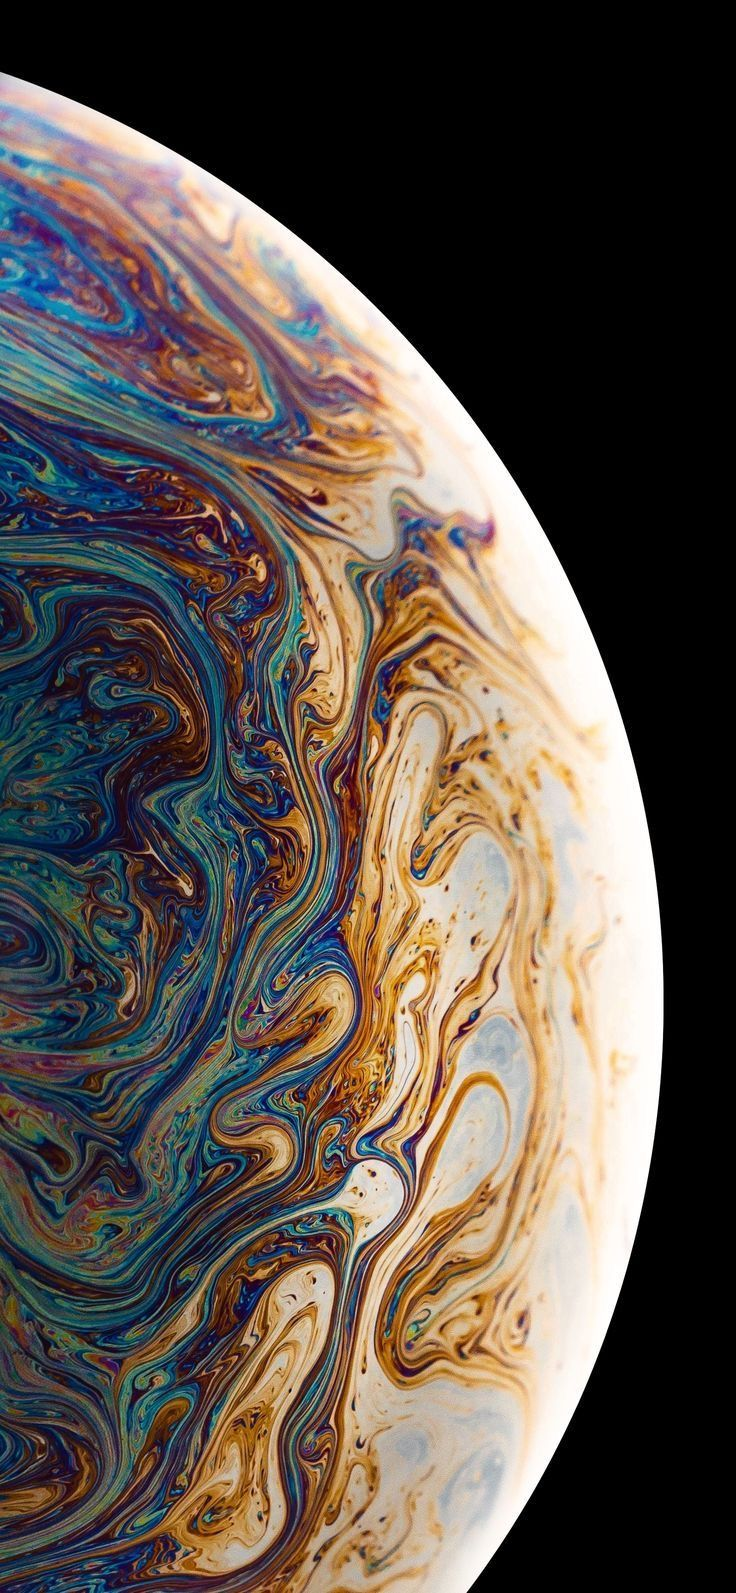 iPhone 11 Wallpaper iOS 13 Wallpaper Galaxy Note 10 S10